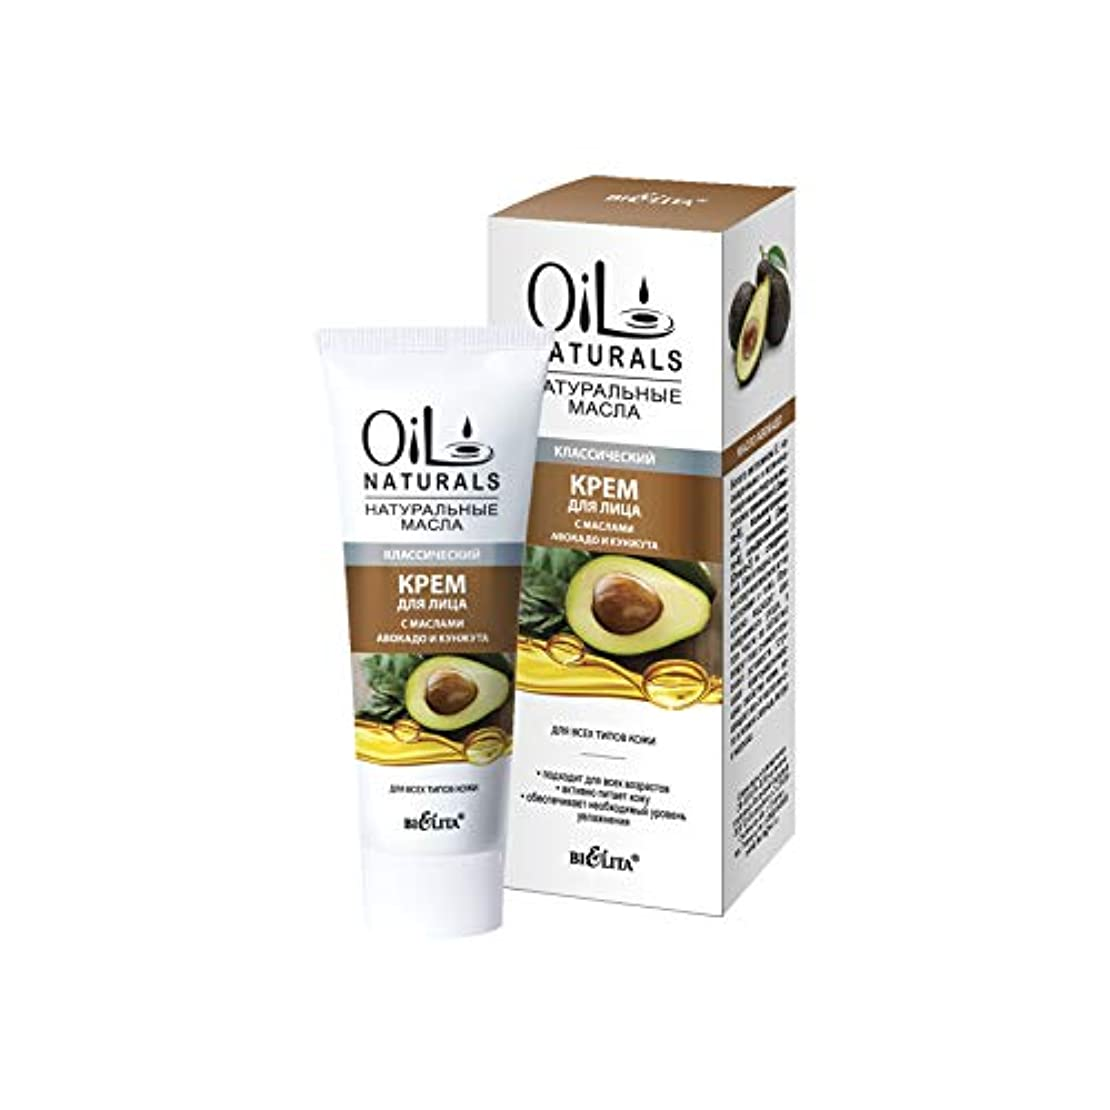 両方下線熱意Bielita & Vitex |Oil Naturals Line | Classic Moisturizing Face Cream, for All Skin Types, 50 ml | Avocado Oil,...